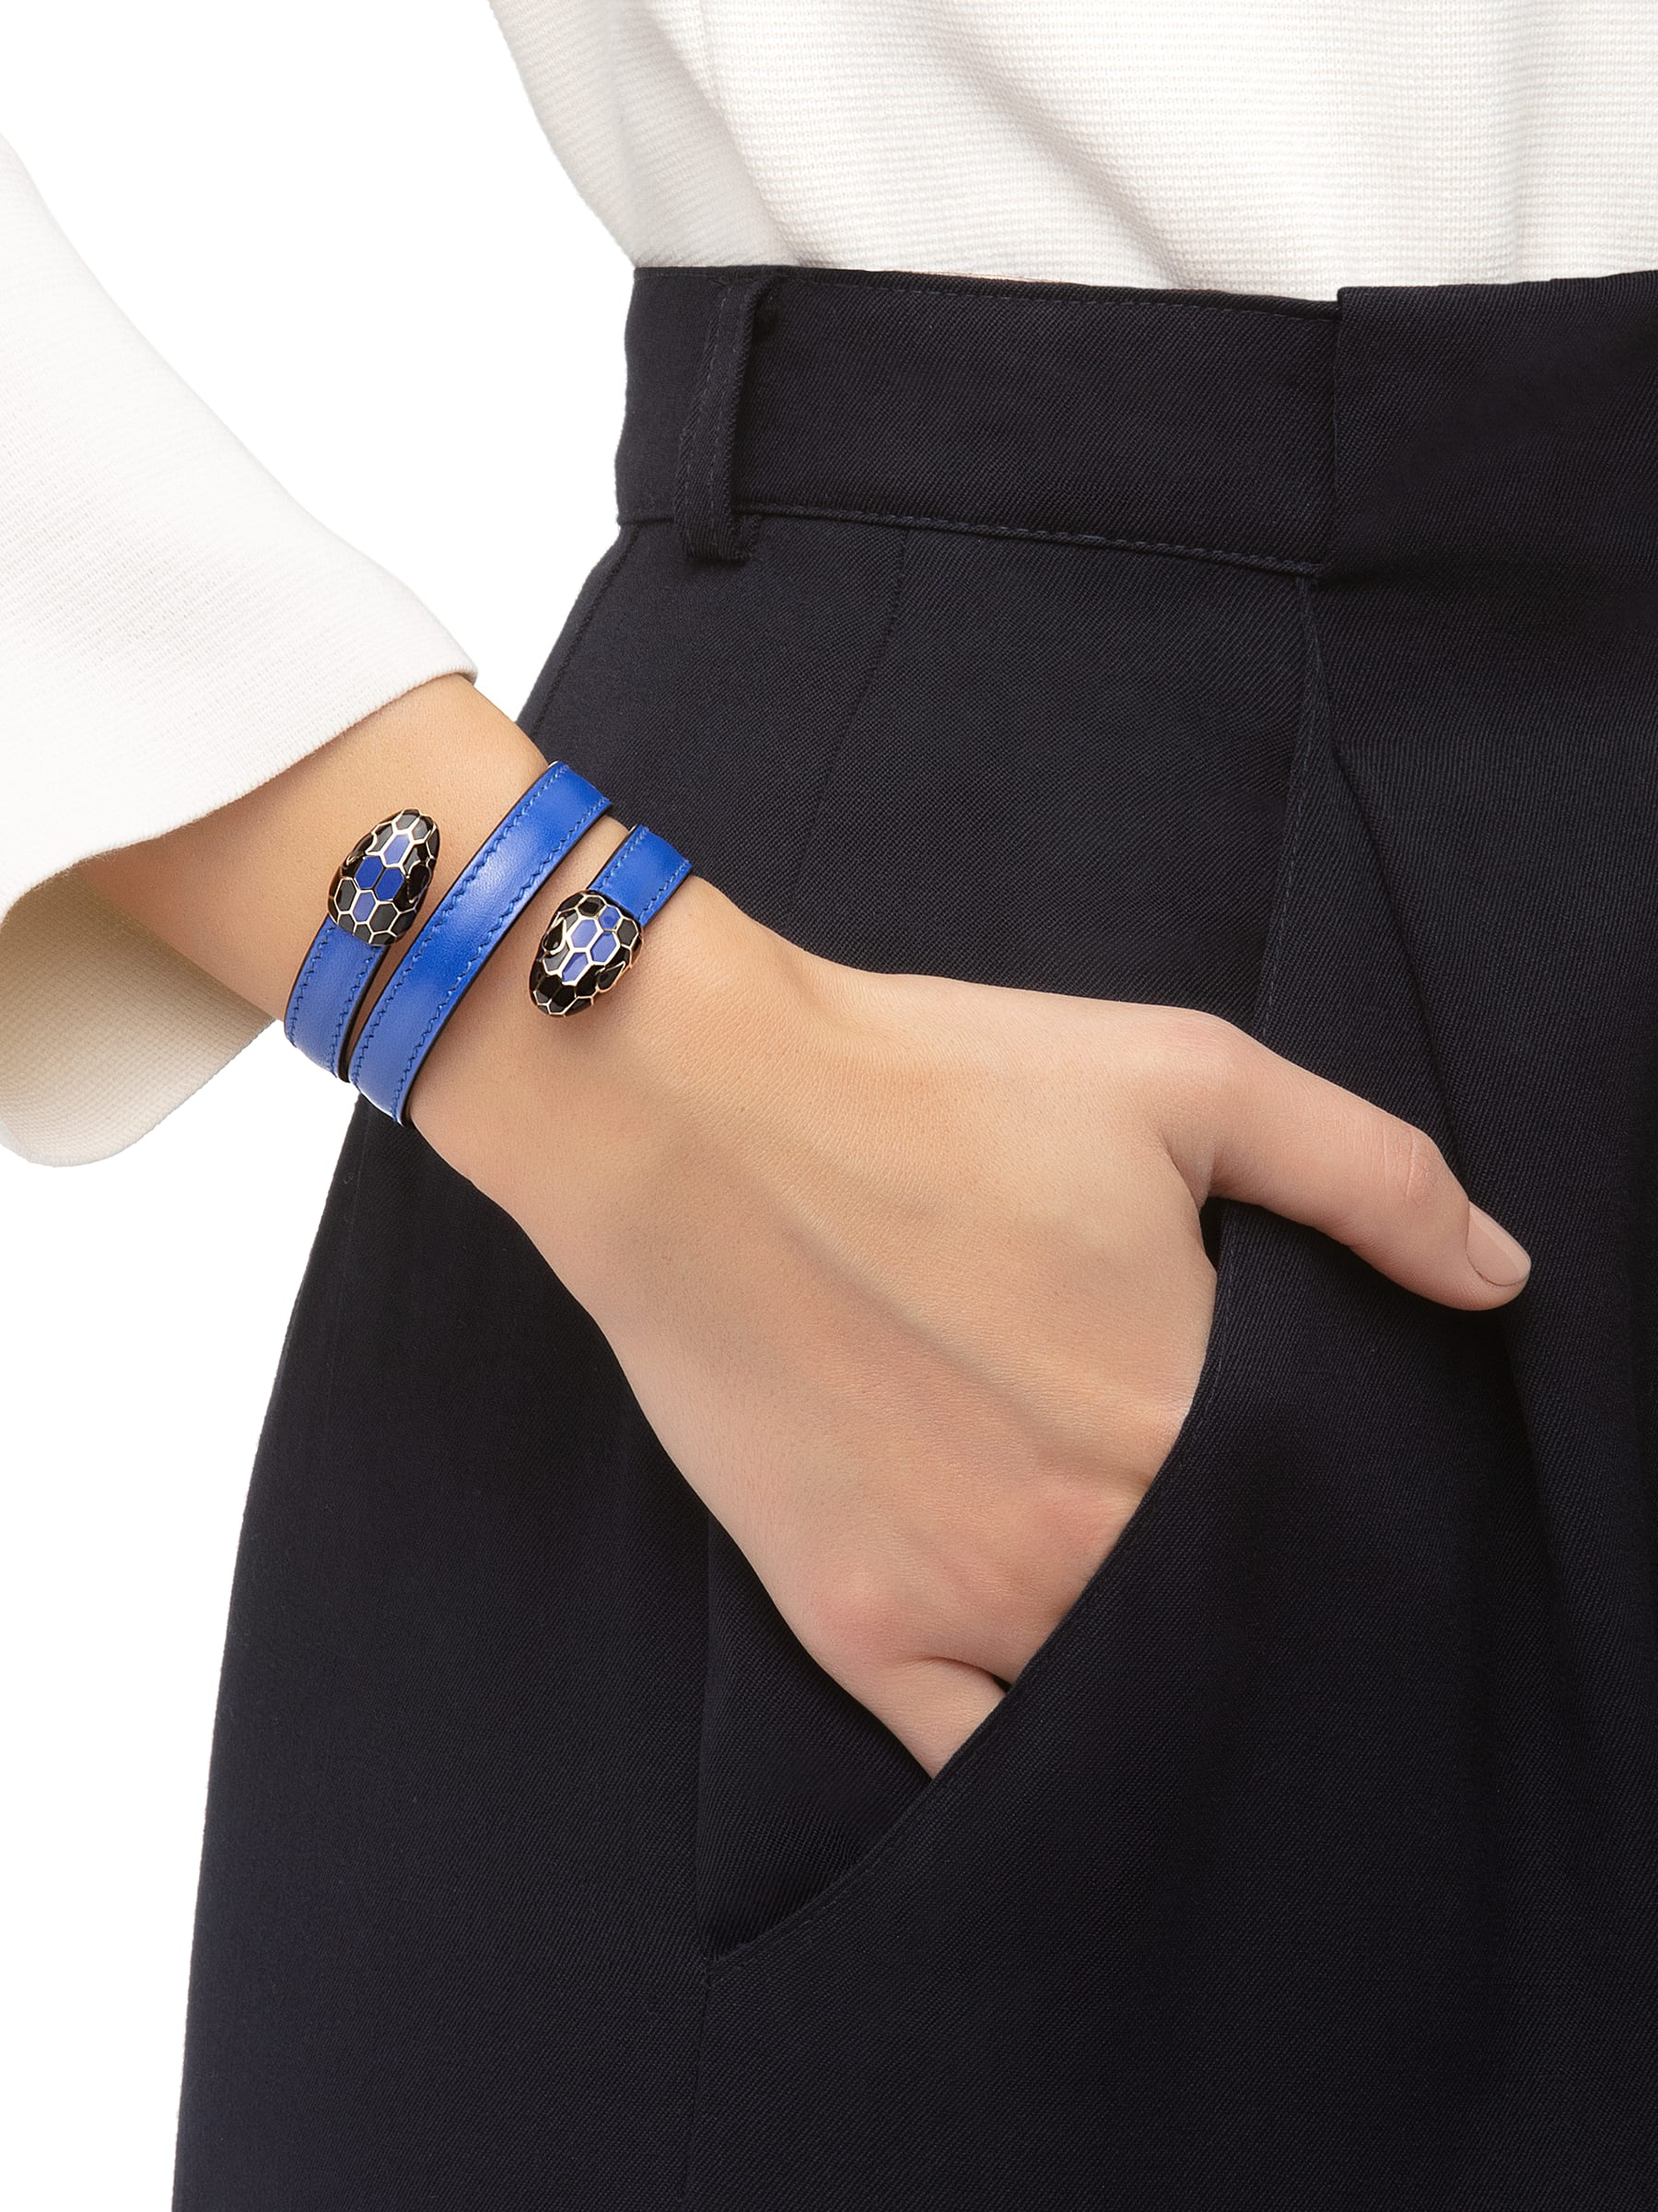 Serpenti Forever multi-coiled rigid Cleopatra bracelet in cobalt tourmaline calf leather, with brass light gold plated hardware. Iconic double snakehead décor in black and cobalt tourmaline enamel, with black enamel eyes Cleopatra-CL-CT image 2